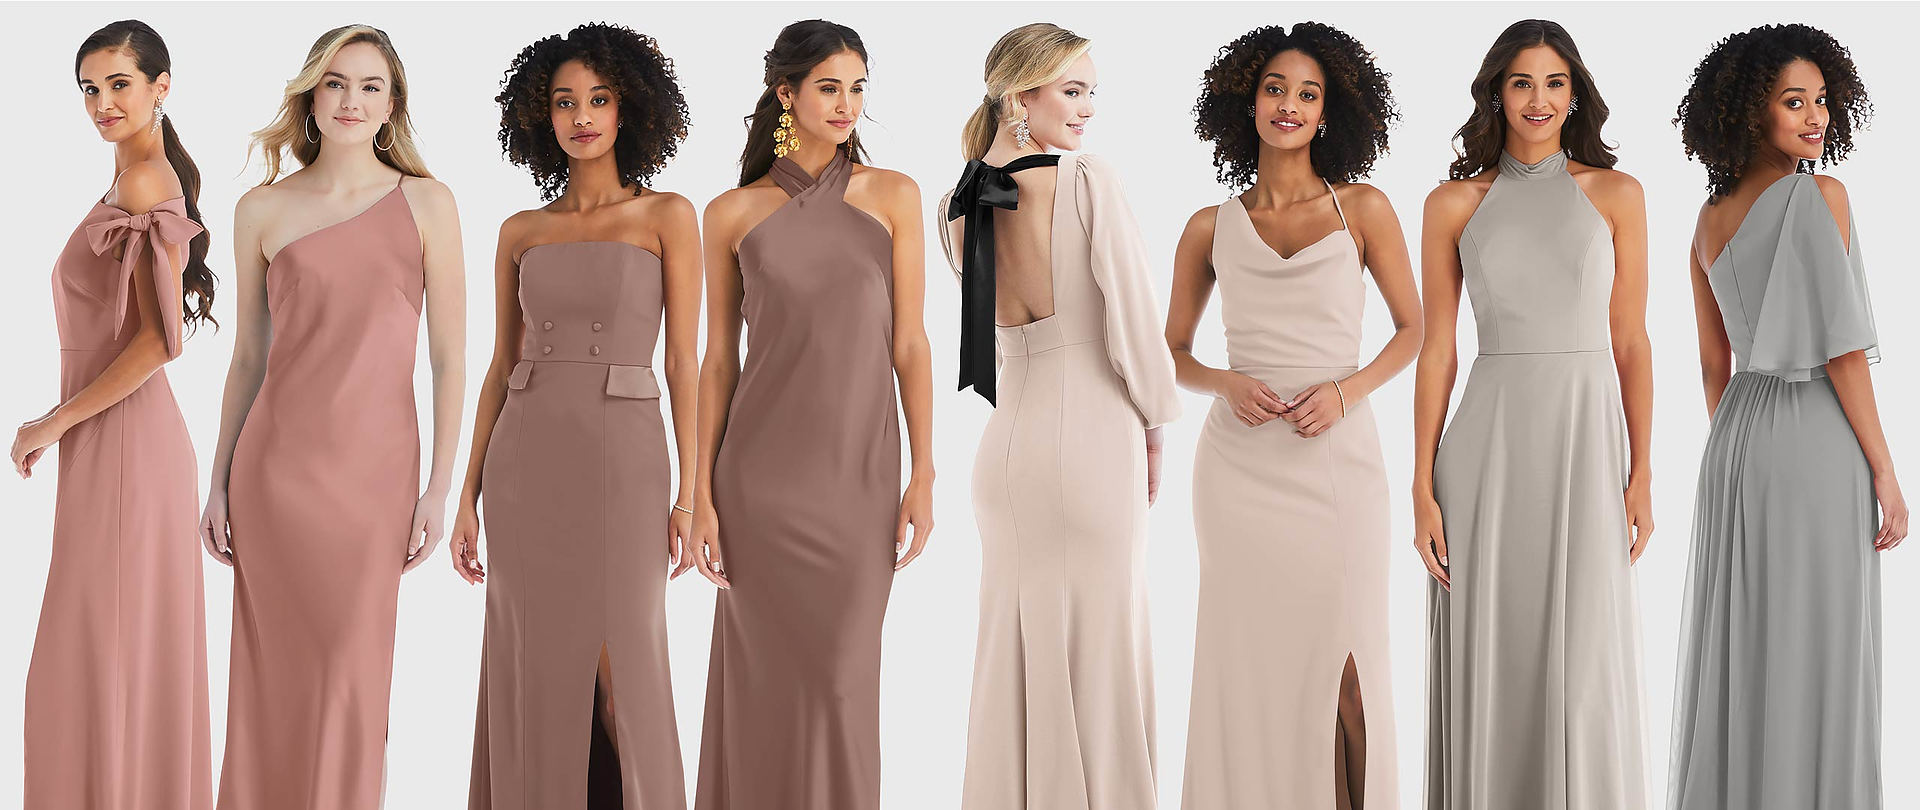 Mix and Match Bridesmaid Dresses for Spring 2021